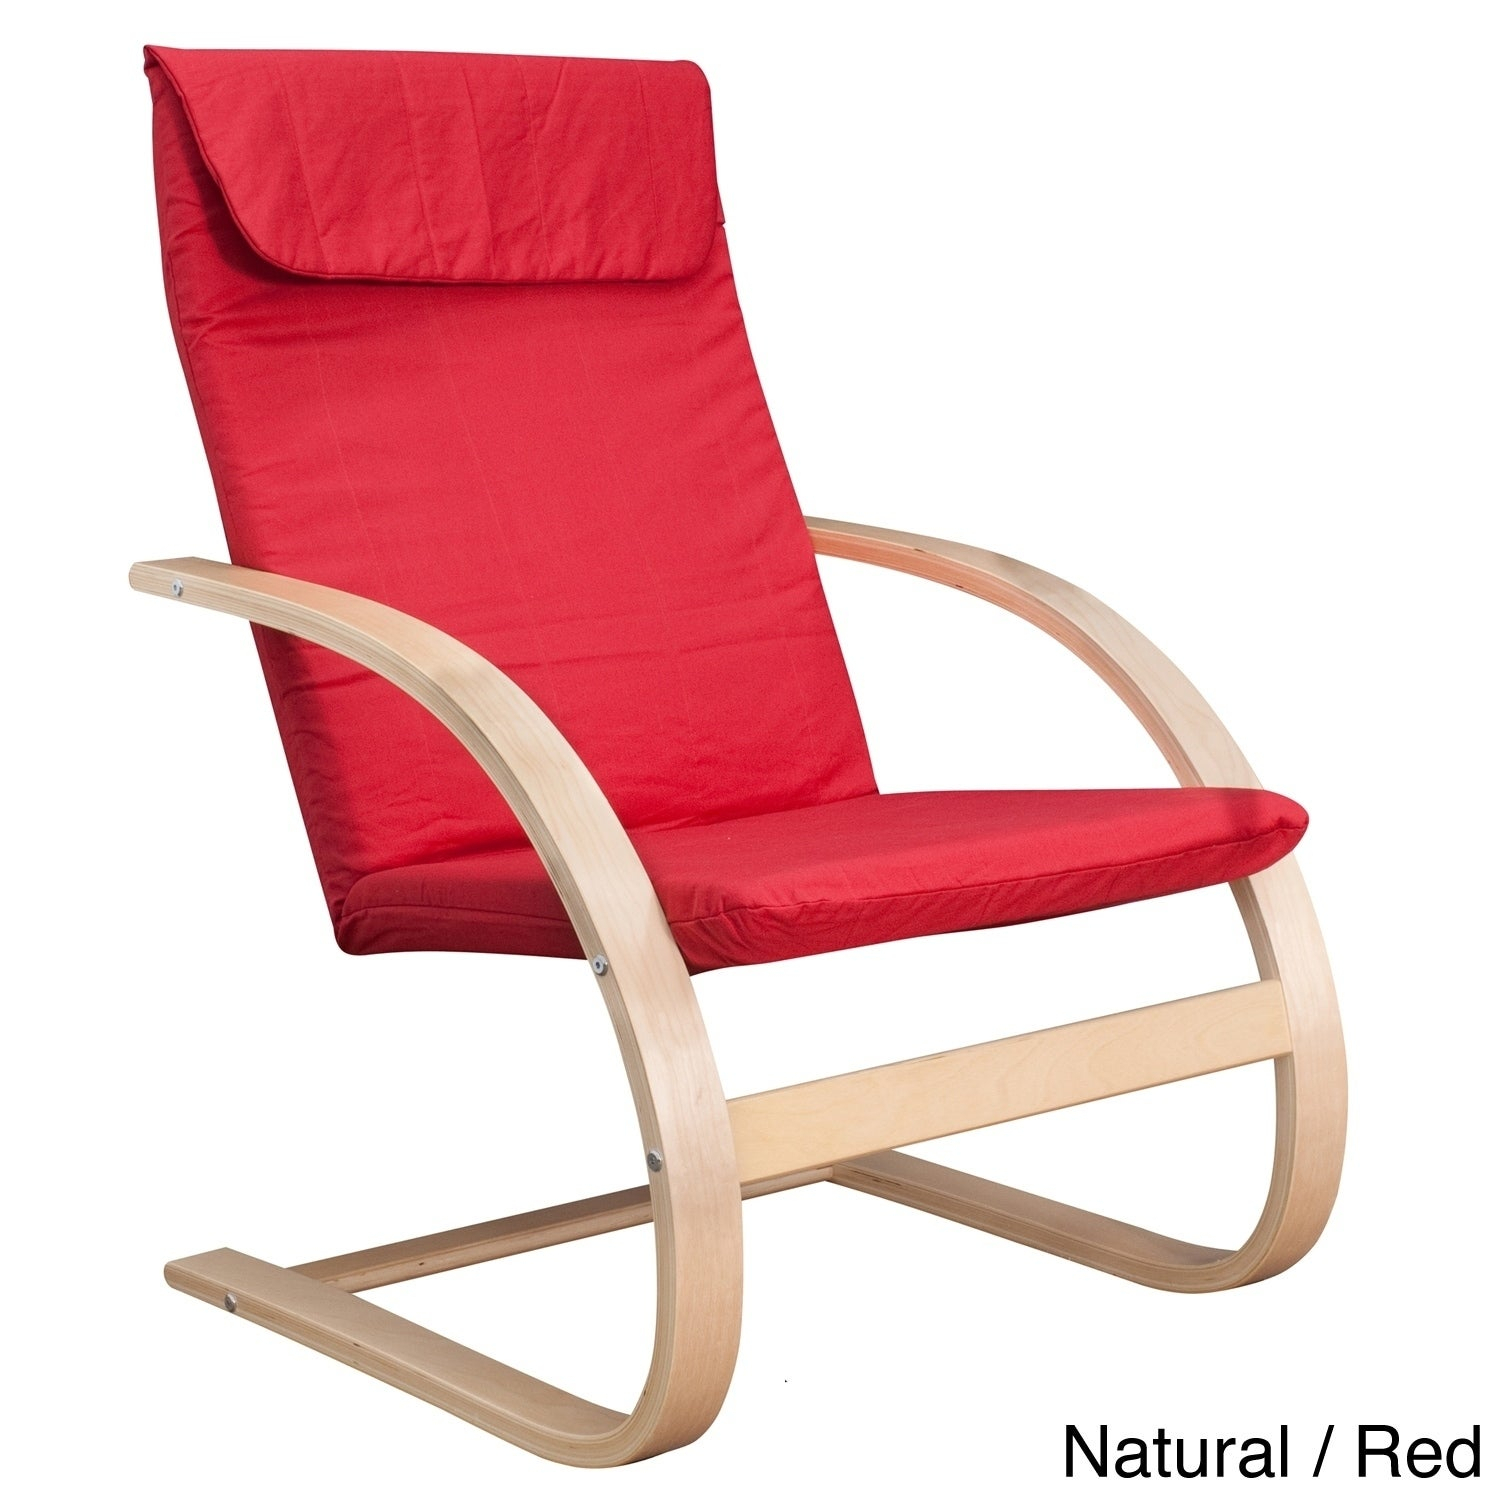 Mia Bentwood Chair Regarding Mia Bentwood Chairs (#7 of 20)